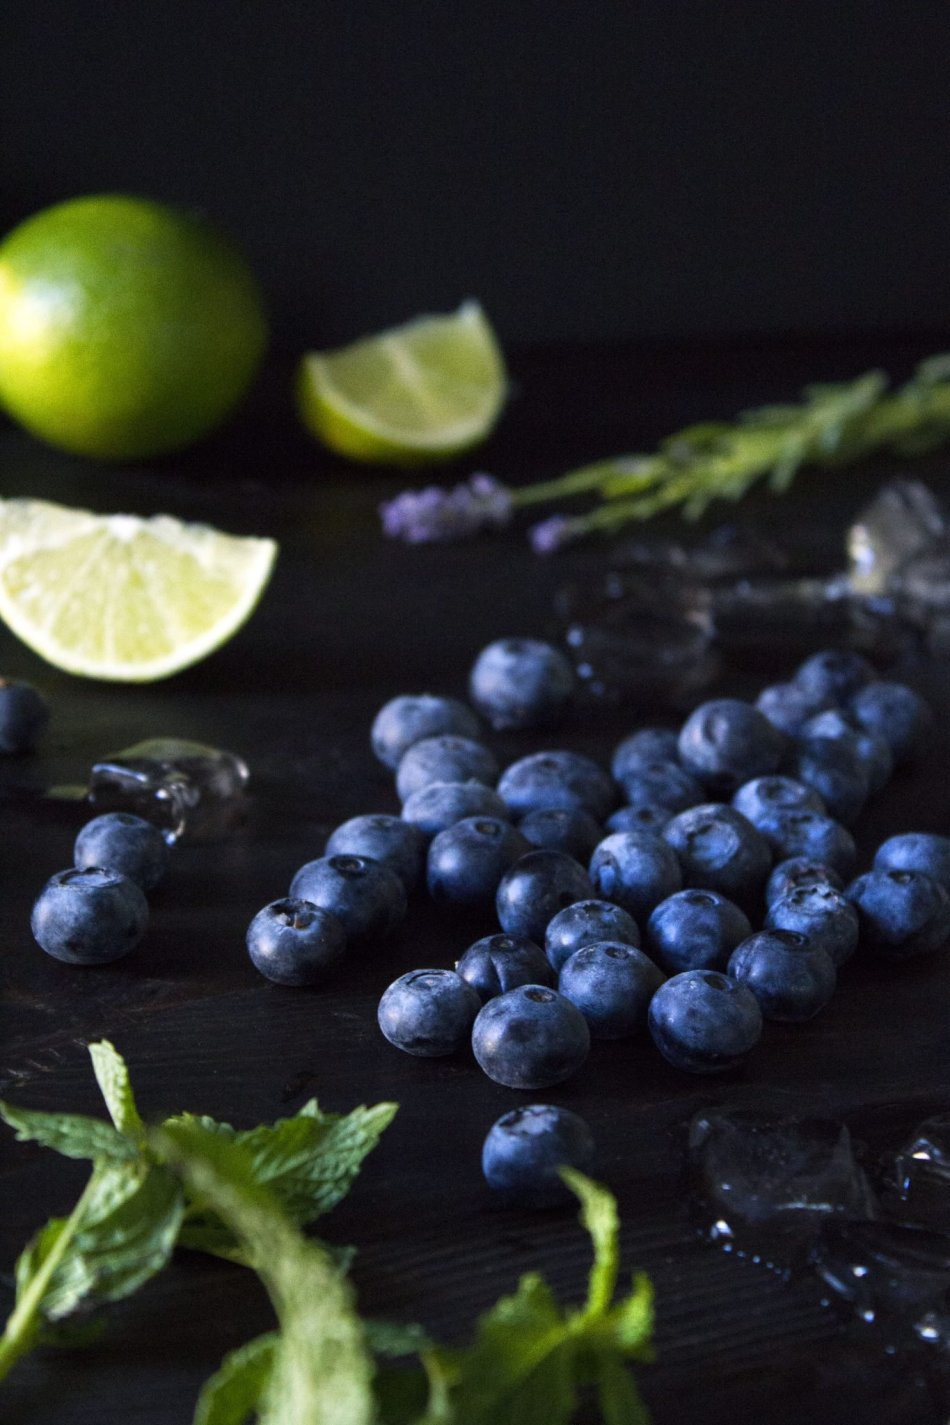 Blueberry-Lavender Fauxjito | A delicious and healthy drink everyone can enjoy!